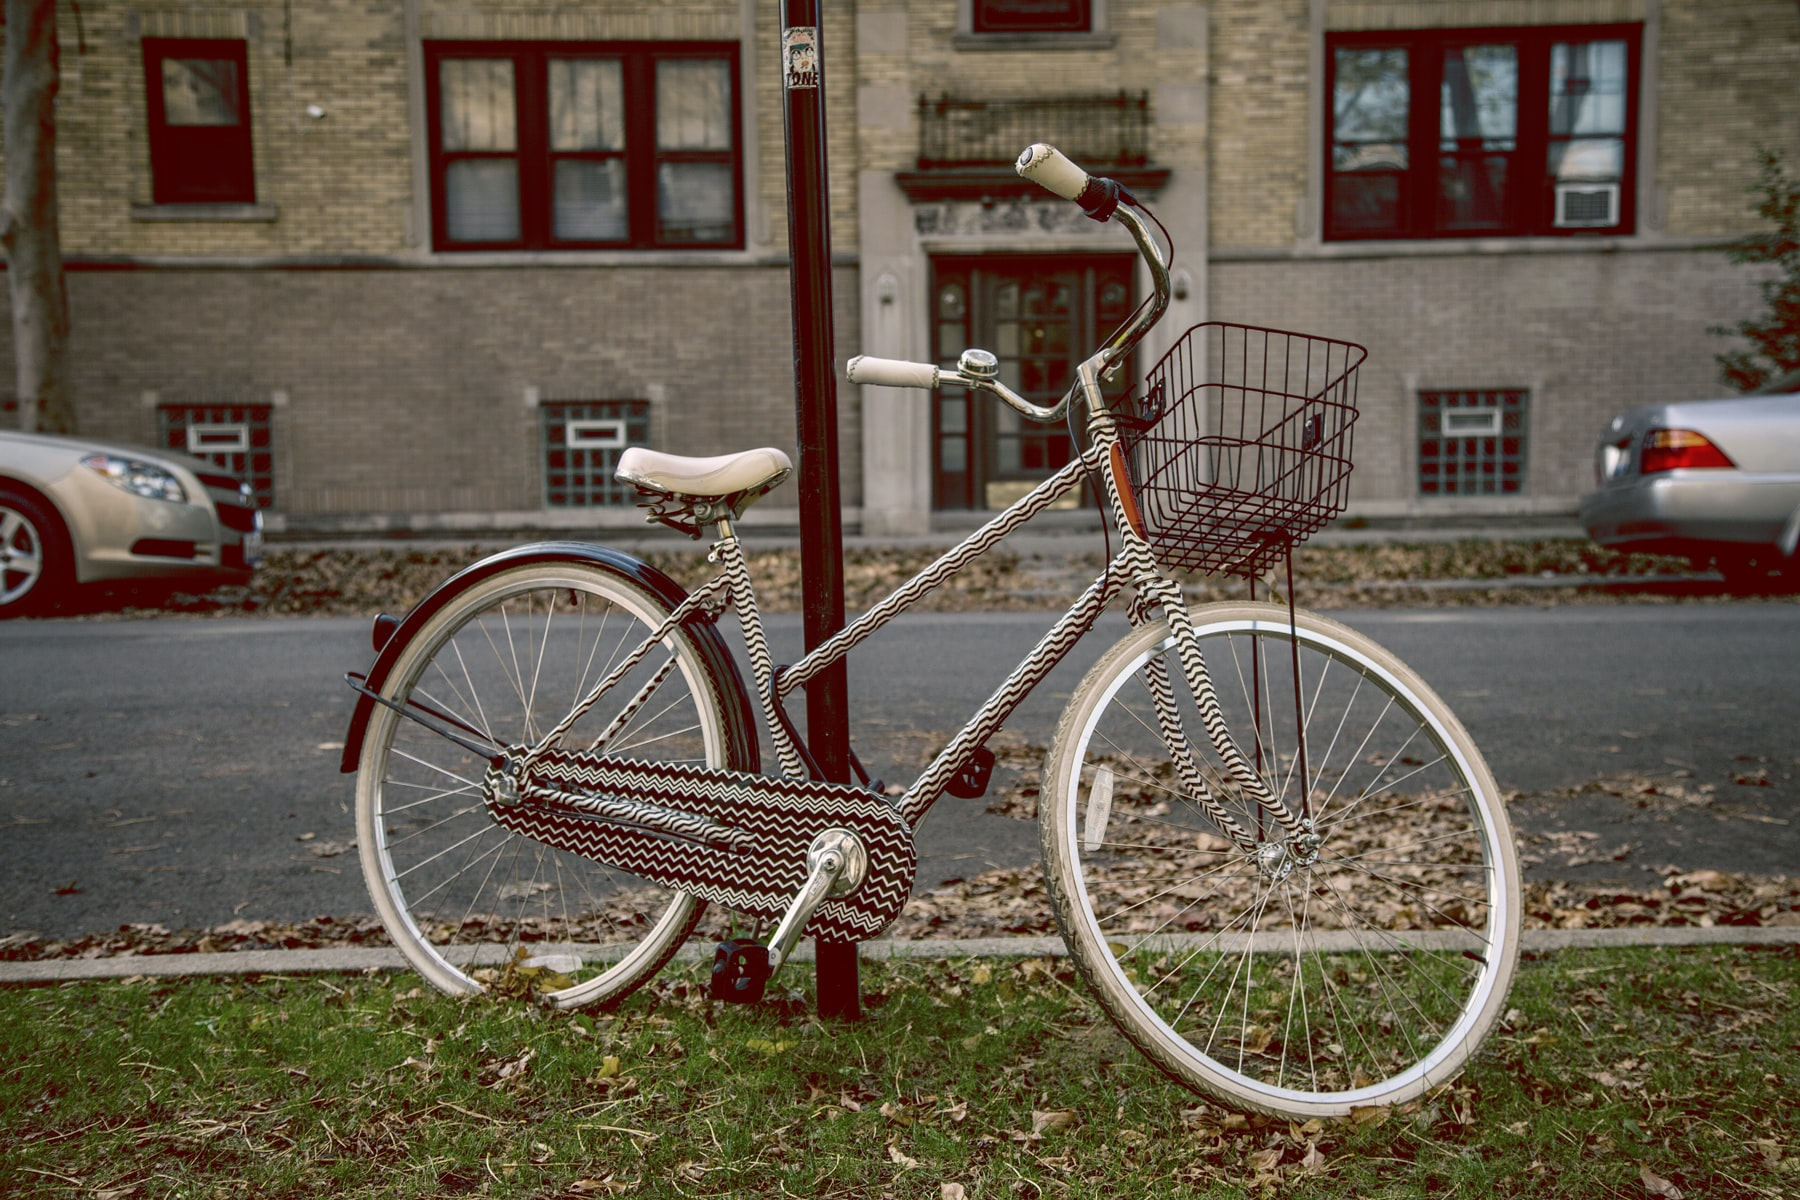 White bicycle with a basket leans against post on a street in Chicago